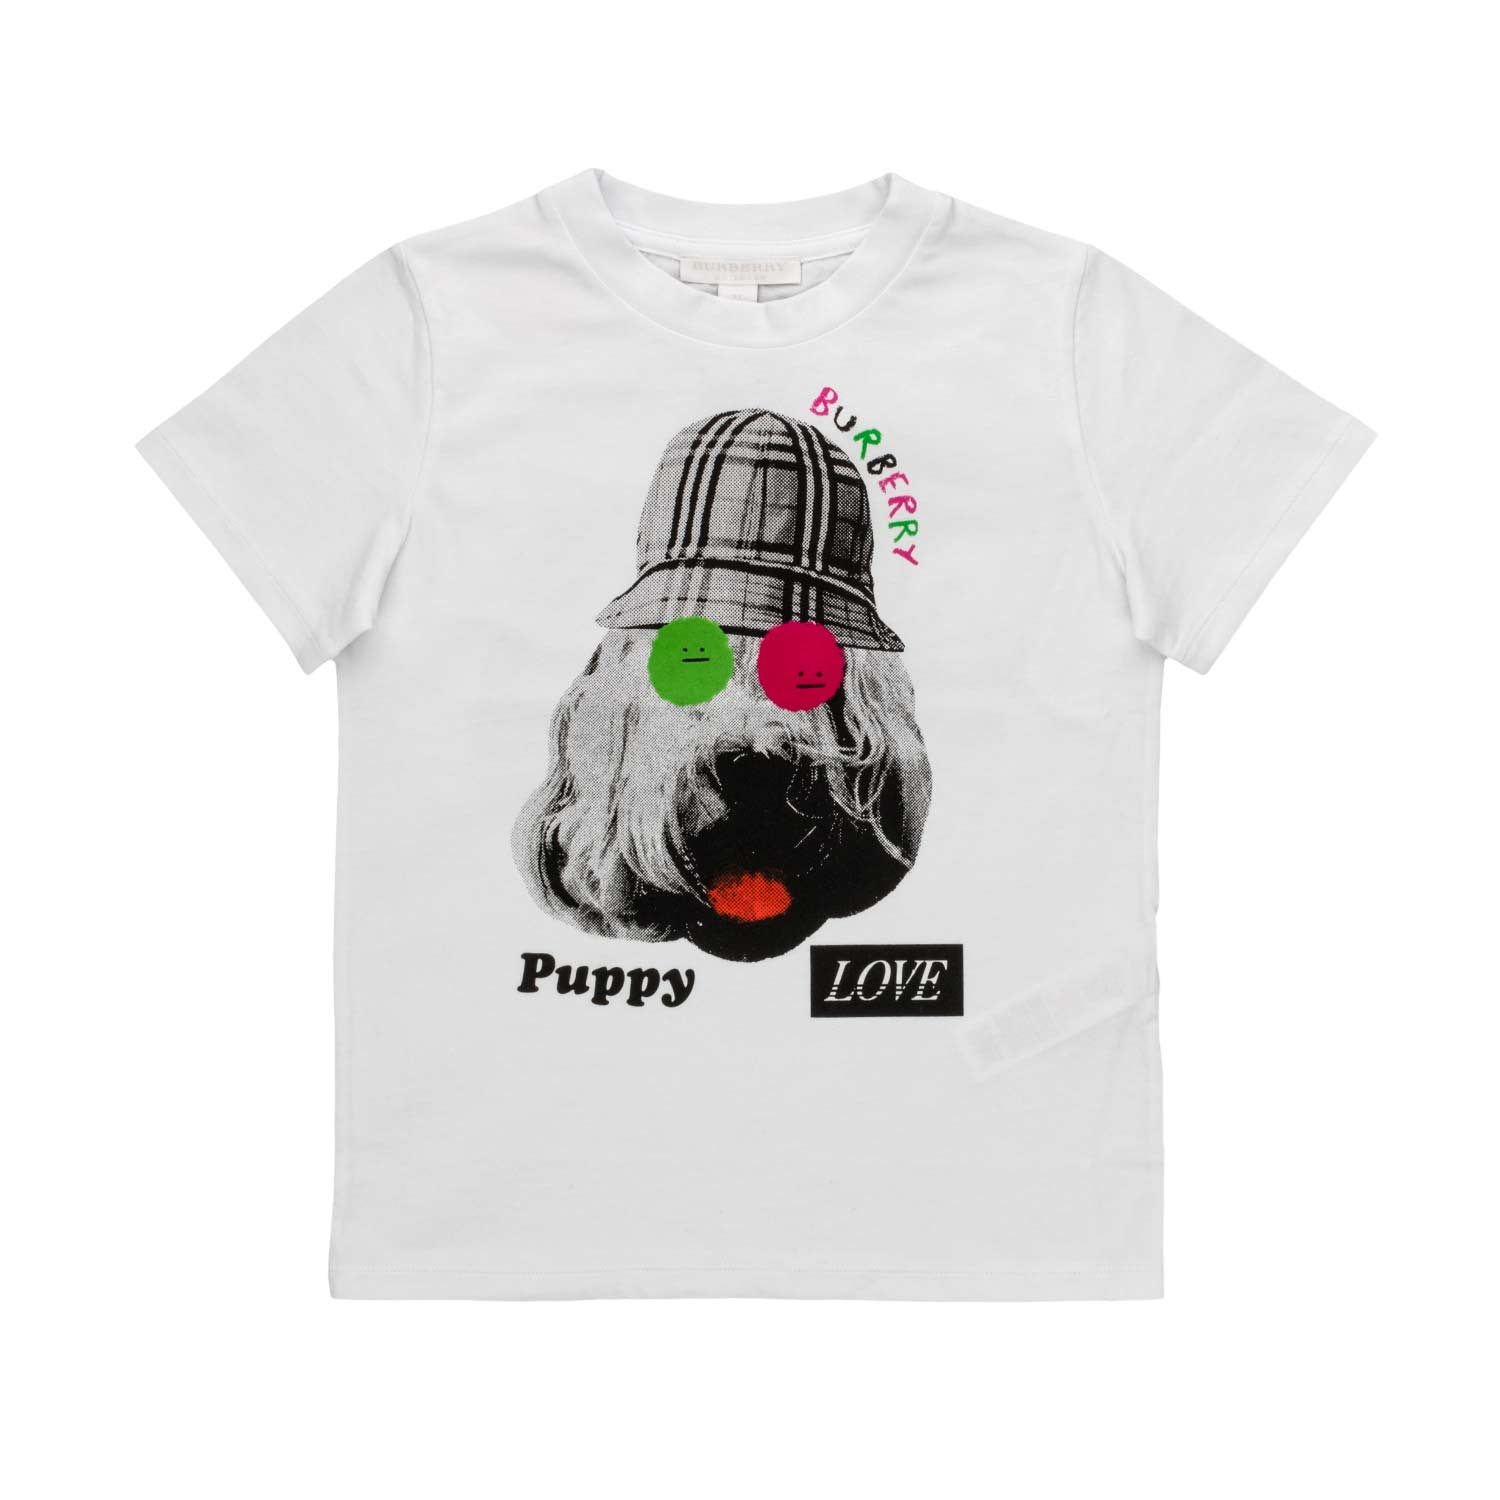 80a01af60253 Burberry - Puppy Love T-Shirt For Girls - annameglio.com shop online